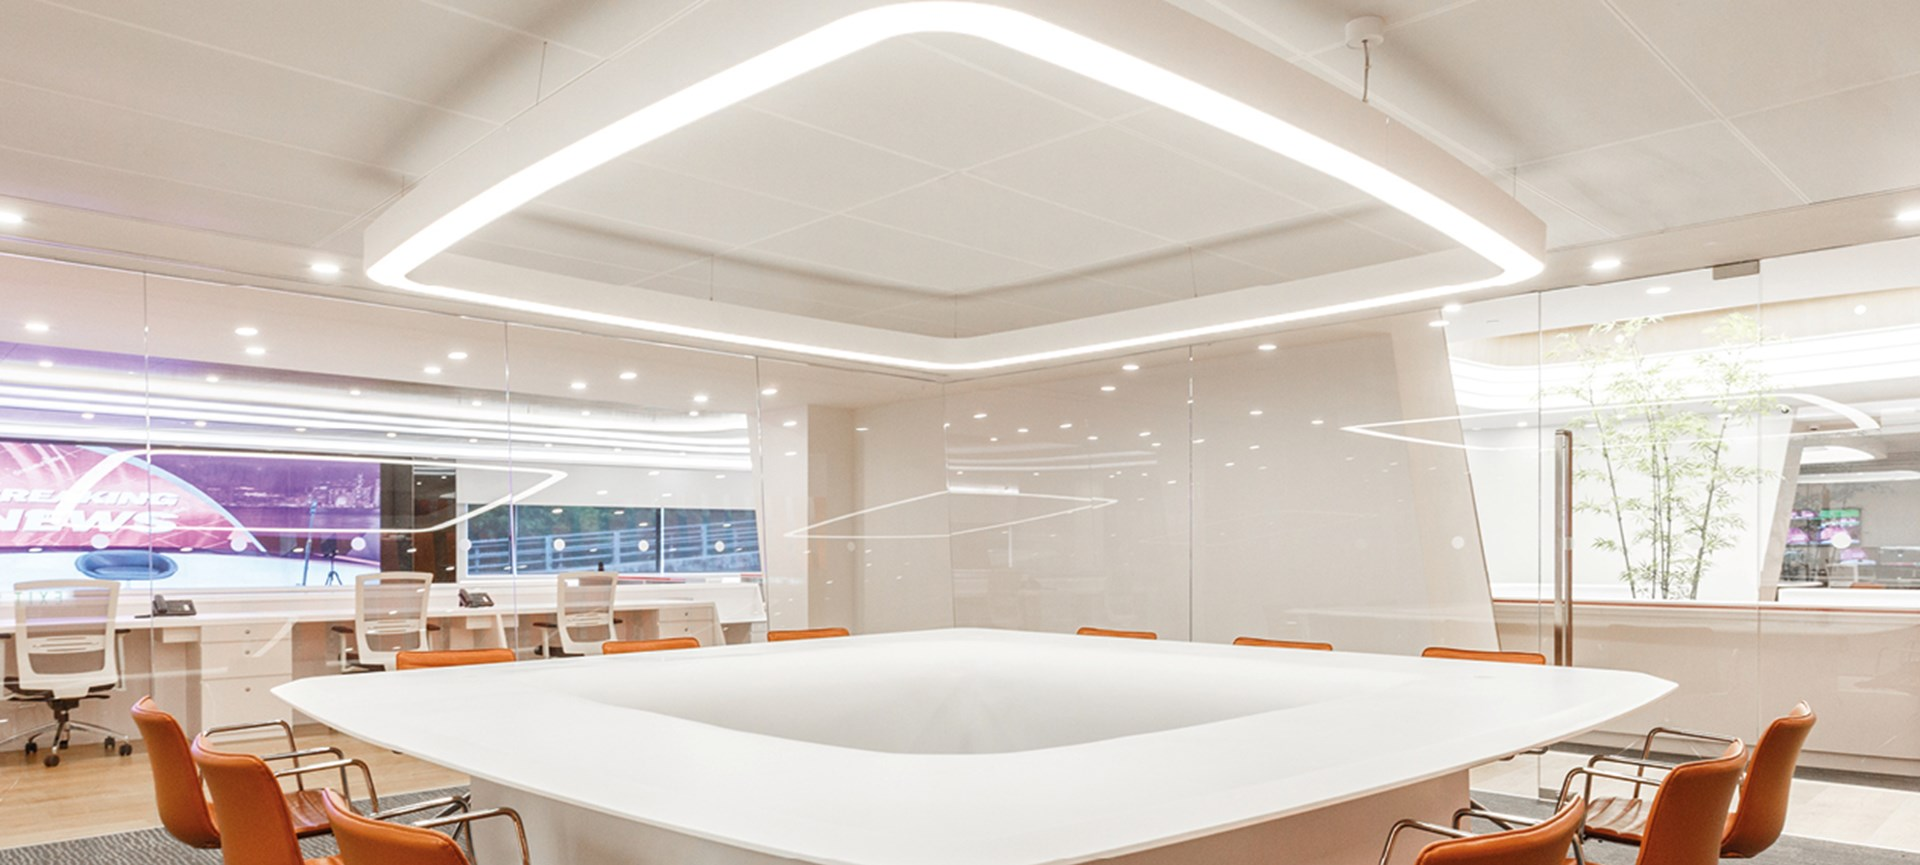 Glorious Prolicht Product Family How To Install Recessed Lighting For Dramatic Effect The Customised Solutions